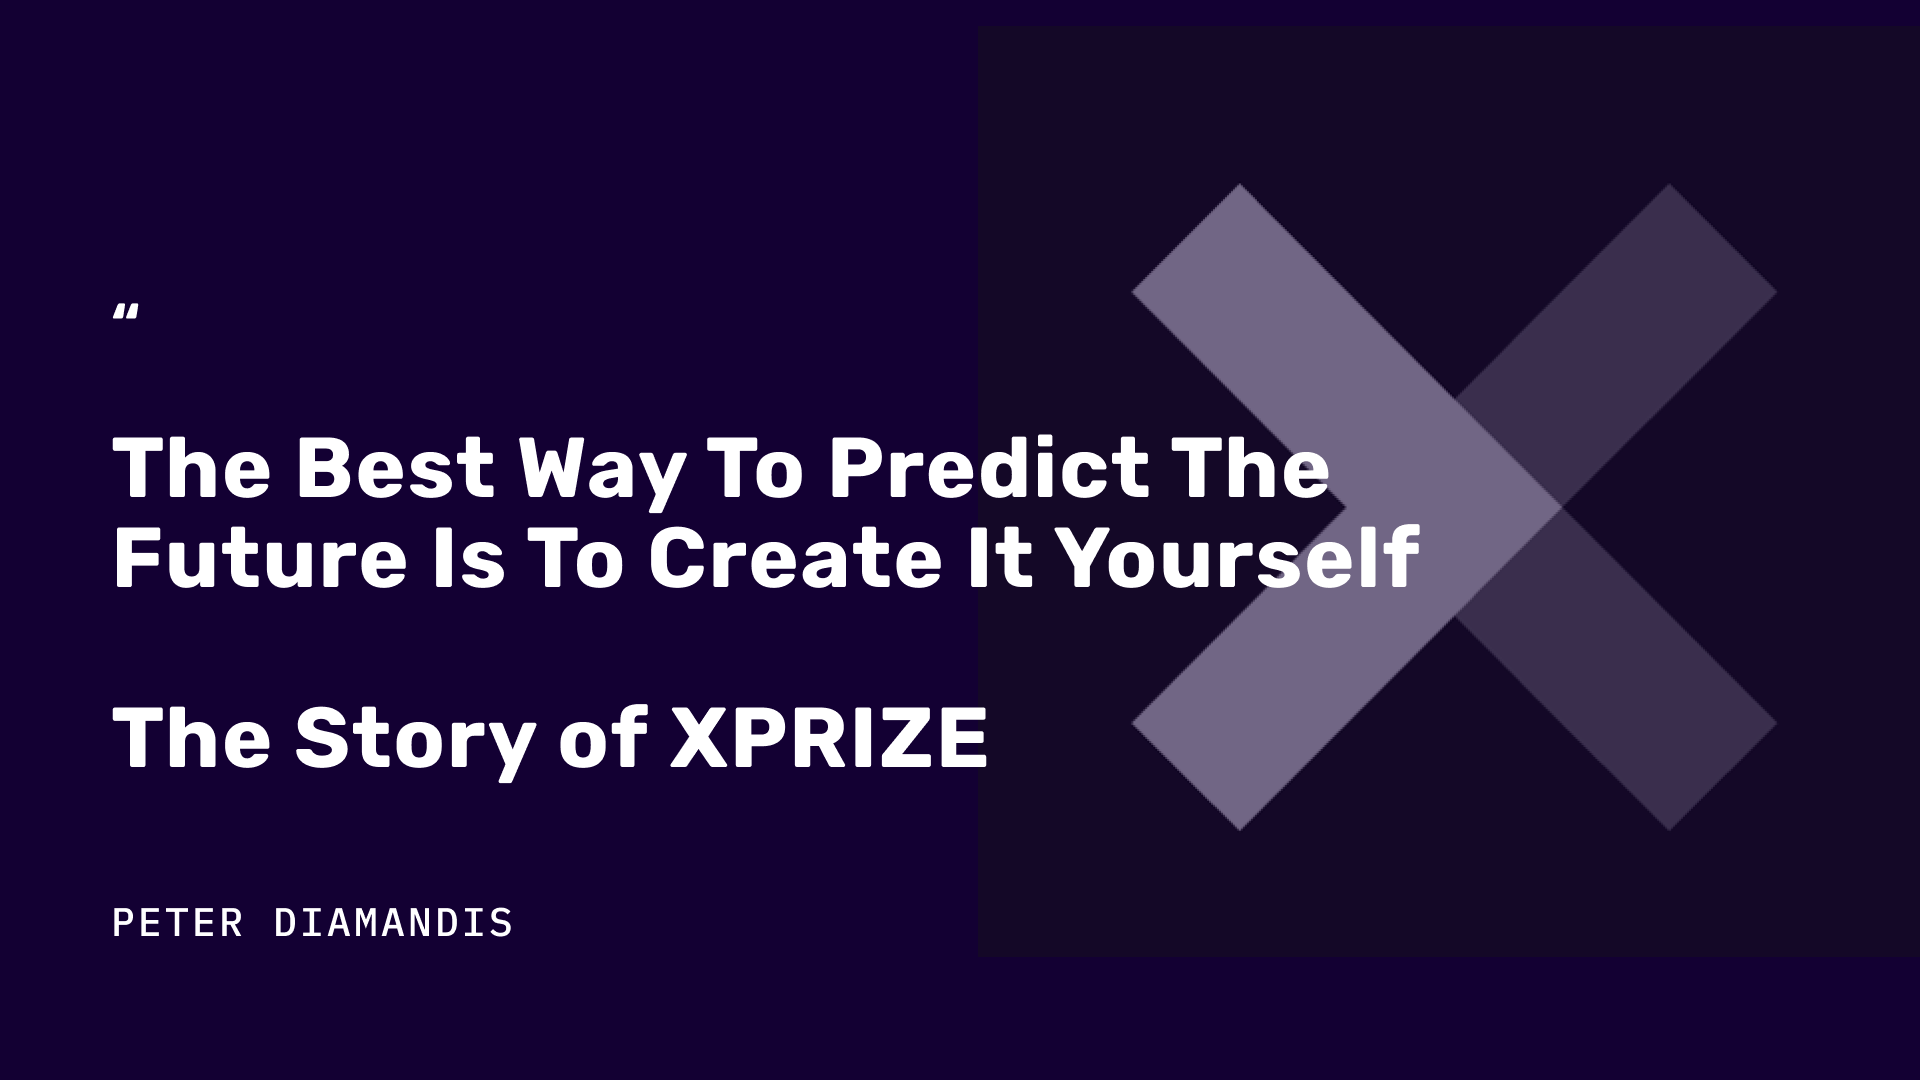 Peter Diamandis quote about the Story of XPRIZE